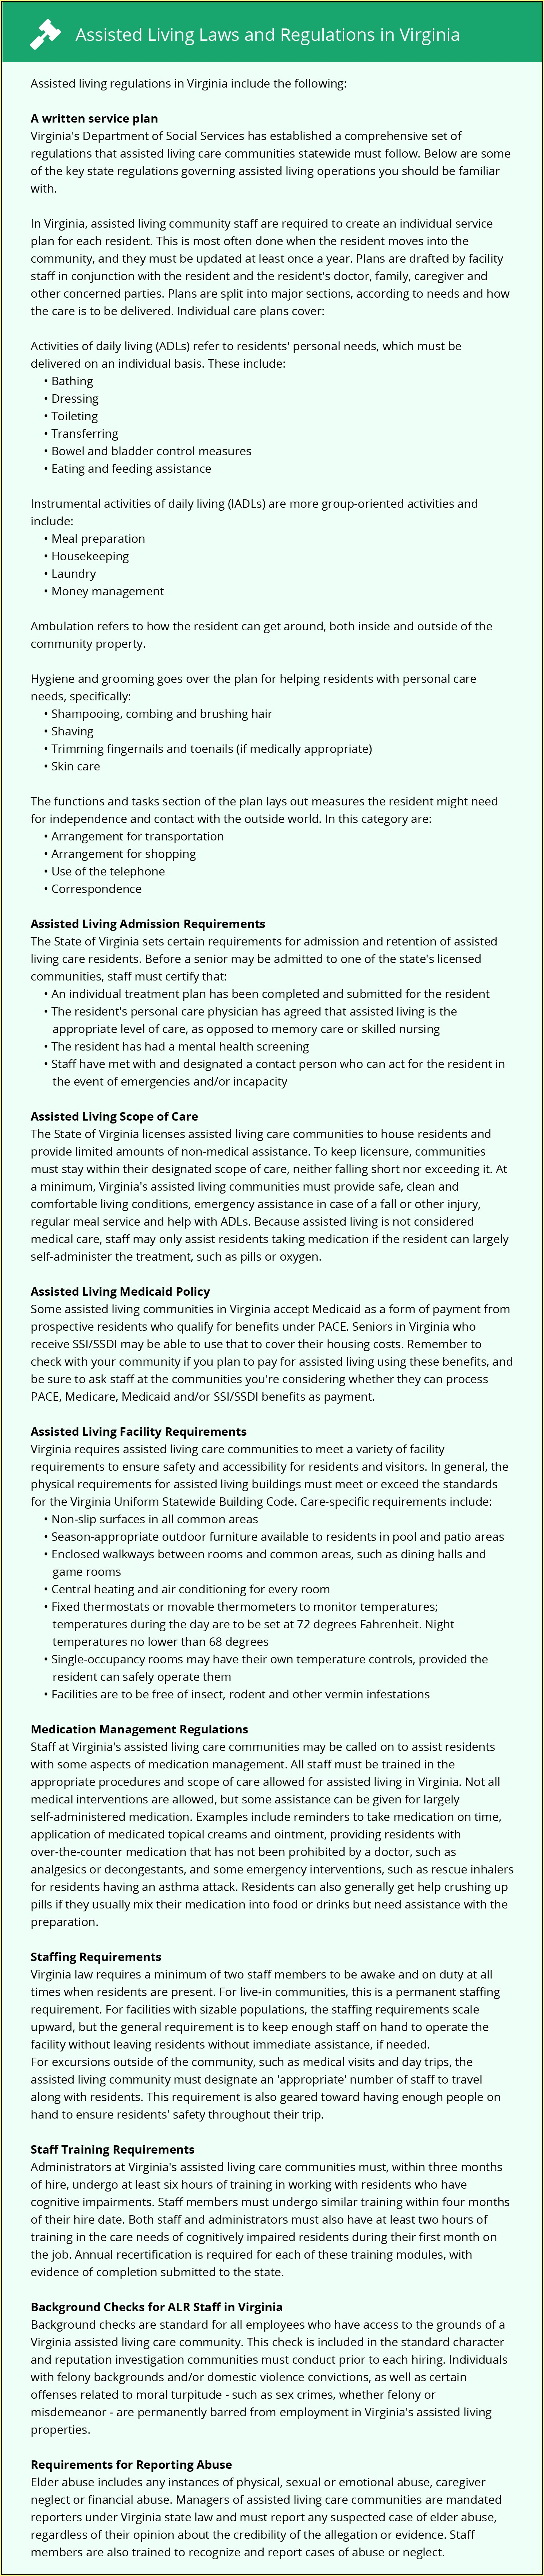 Virginia Assisted Living Physical Form